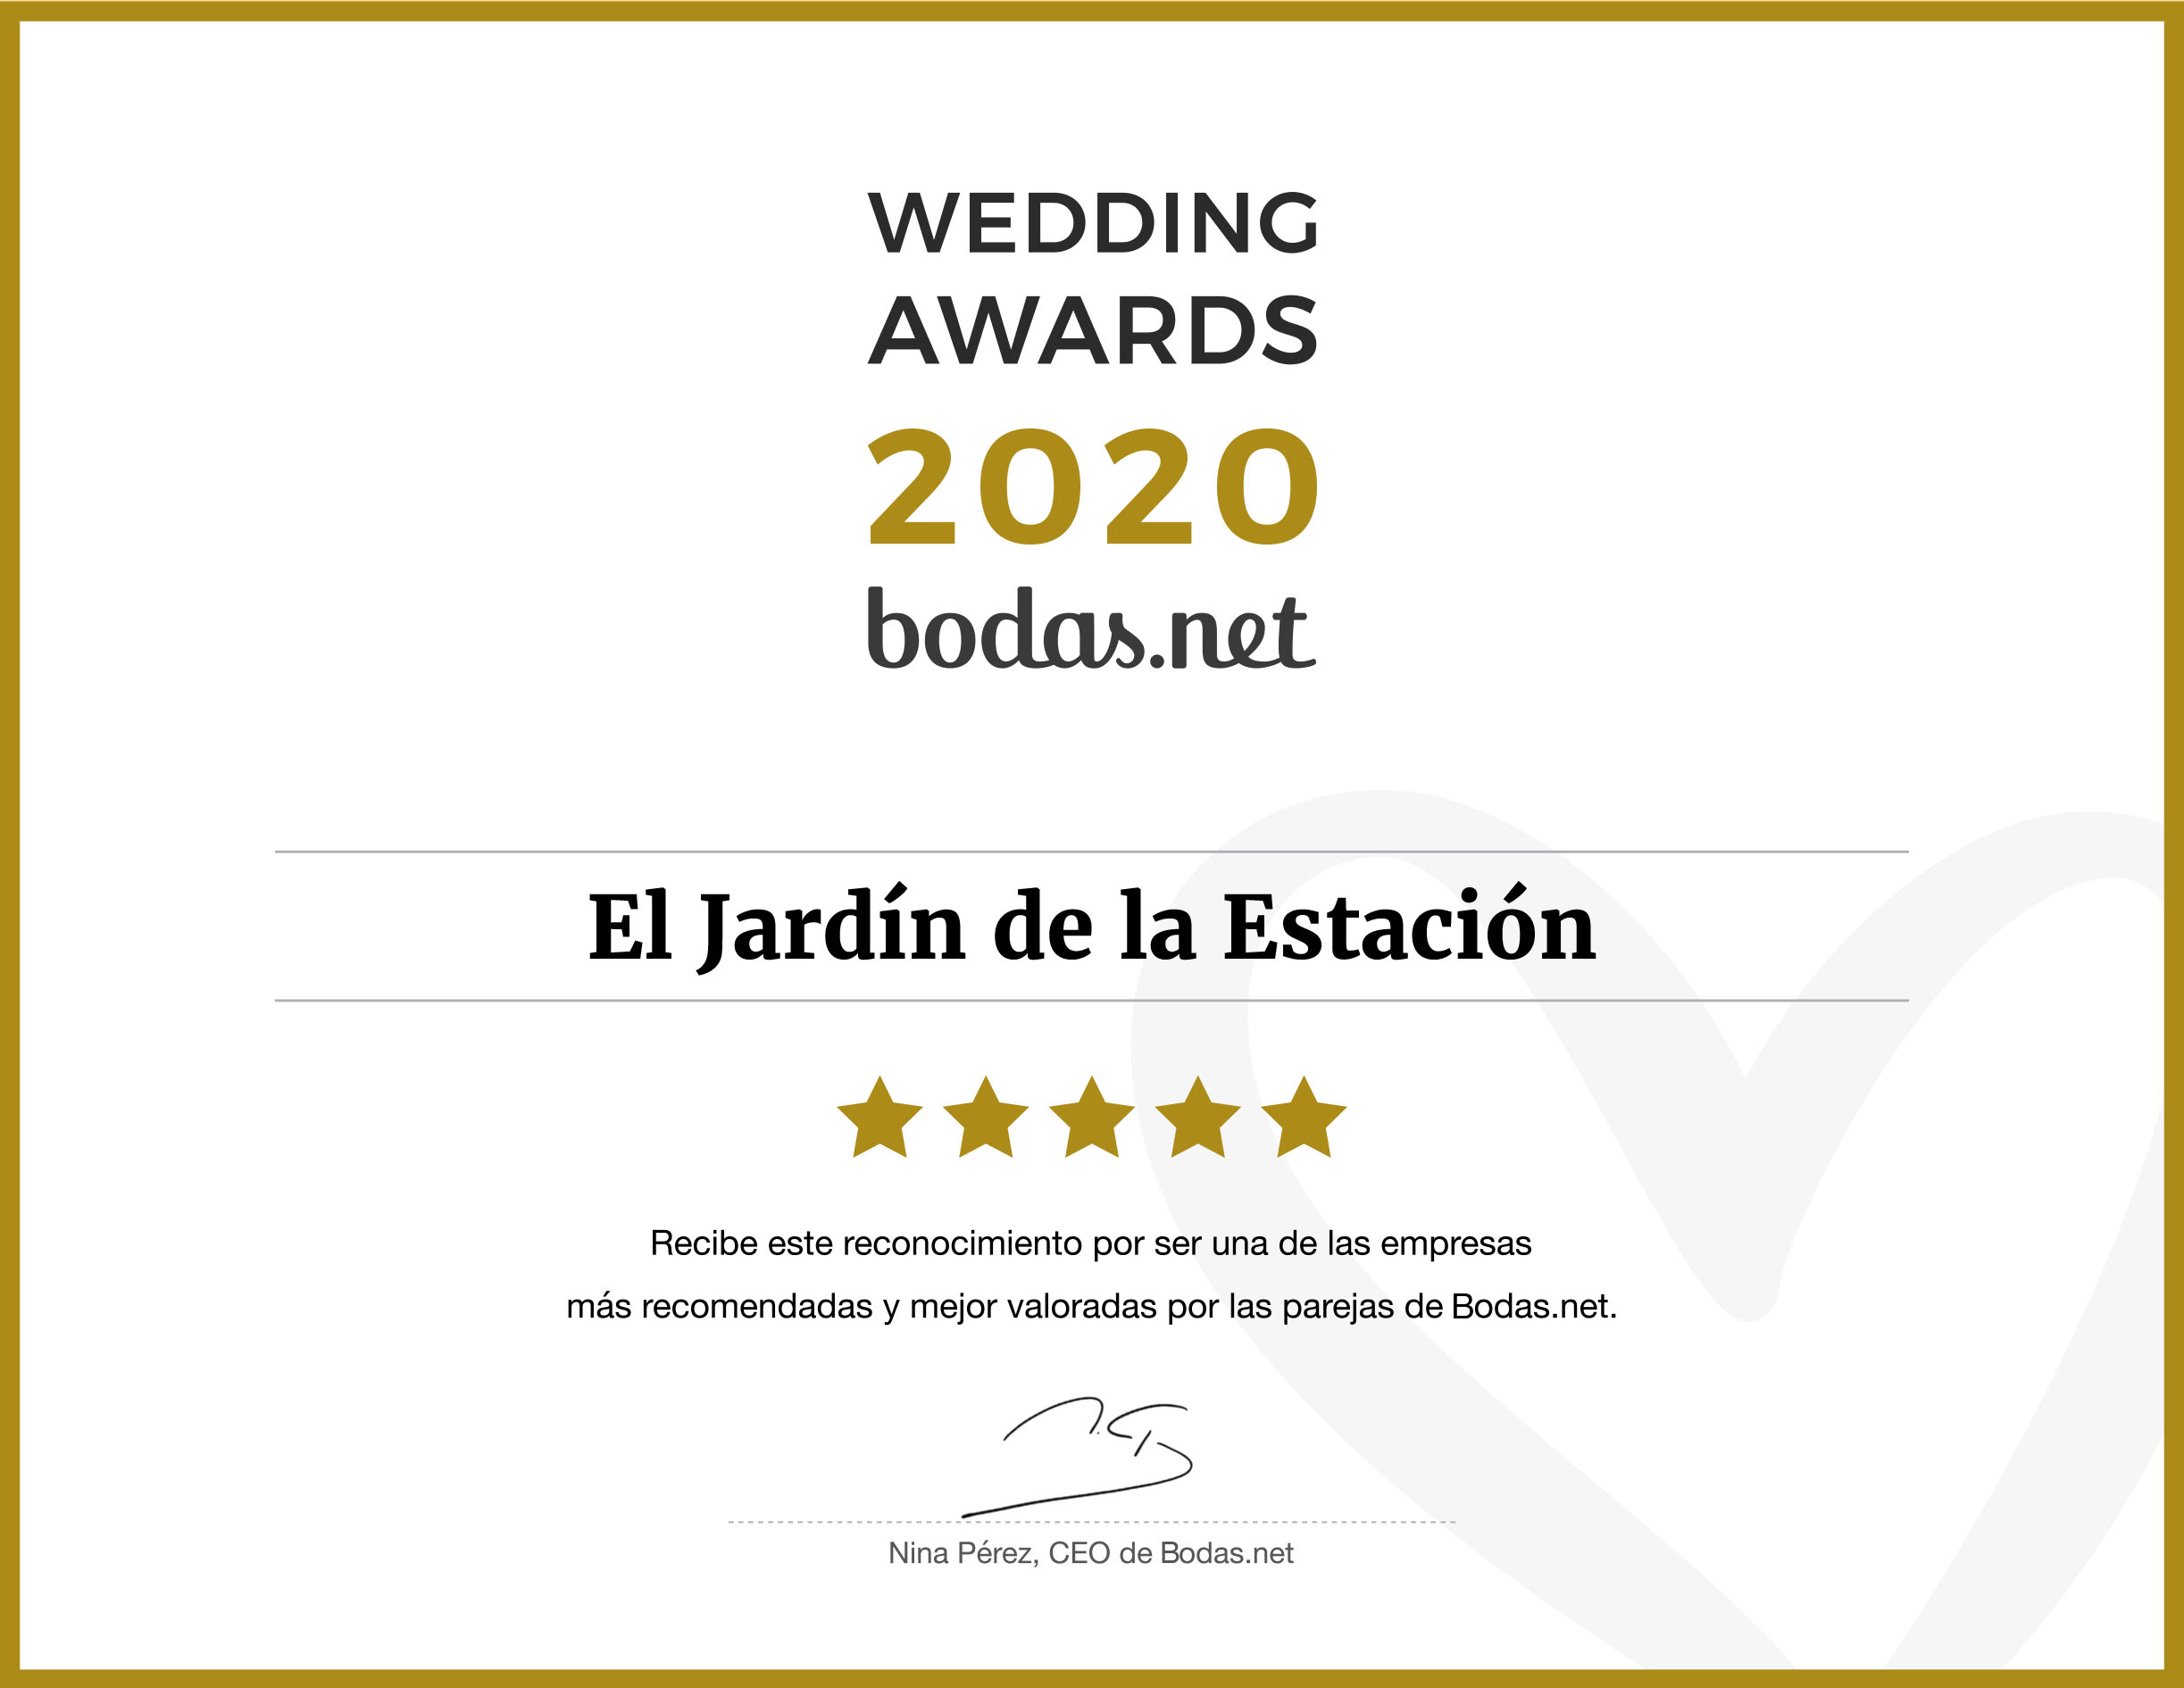 Wedding Awards 2020 - El Jardín de la Estación